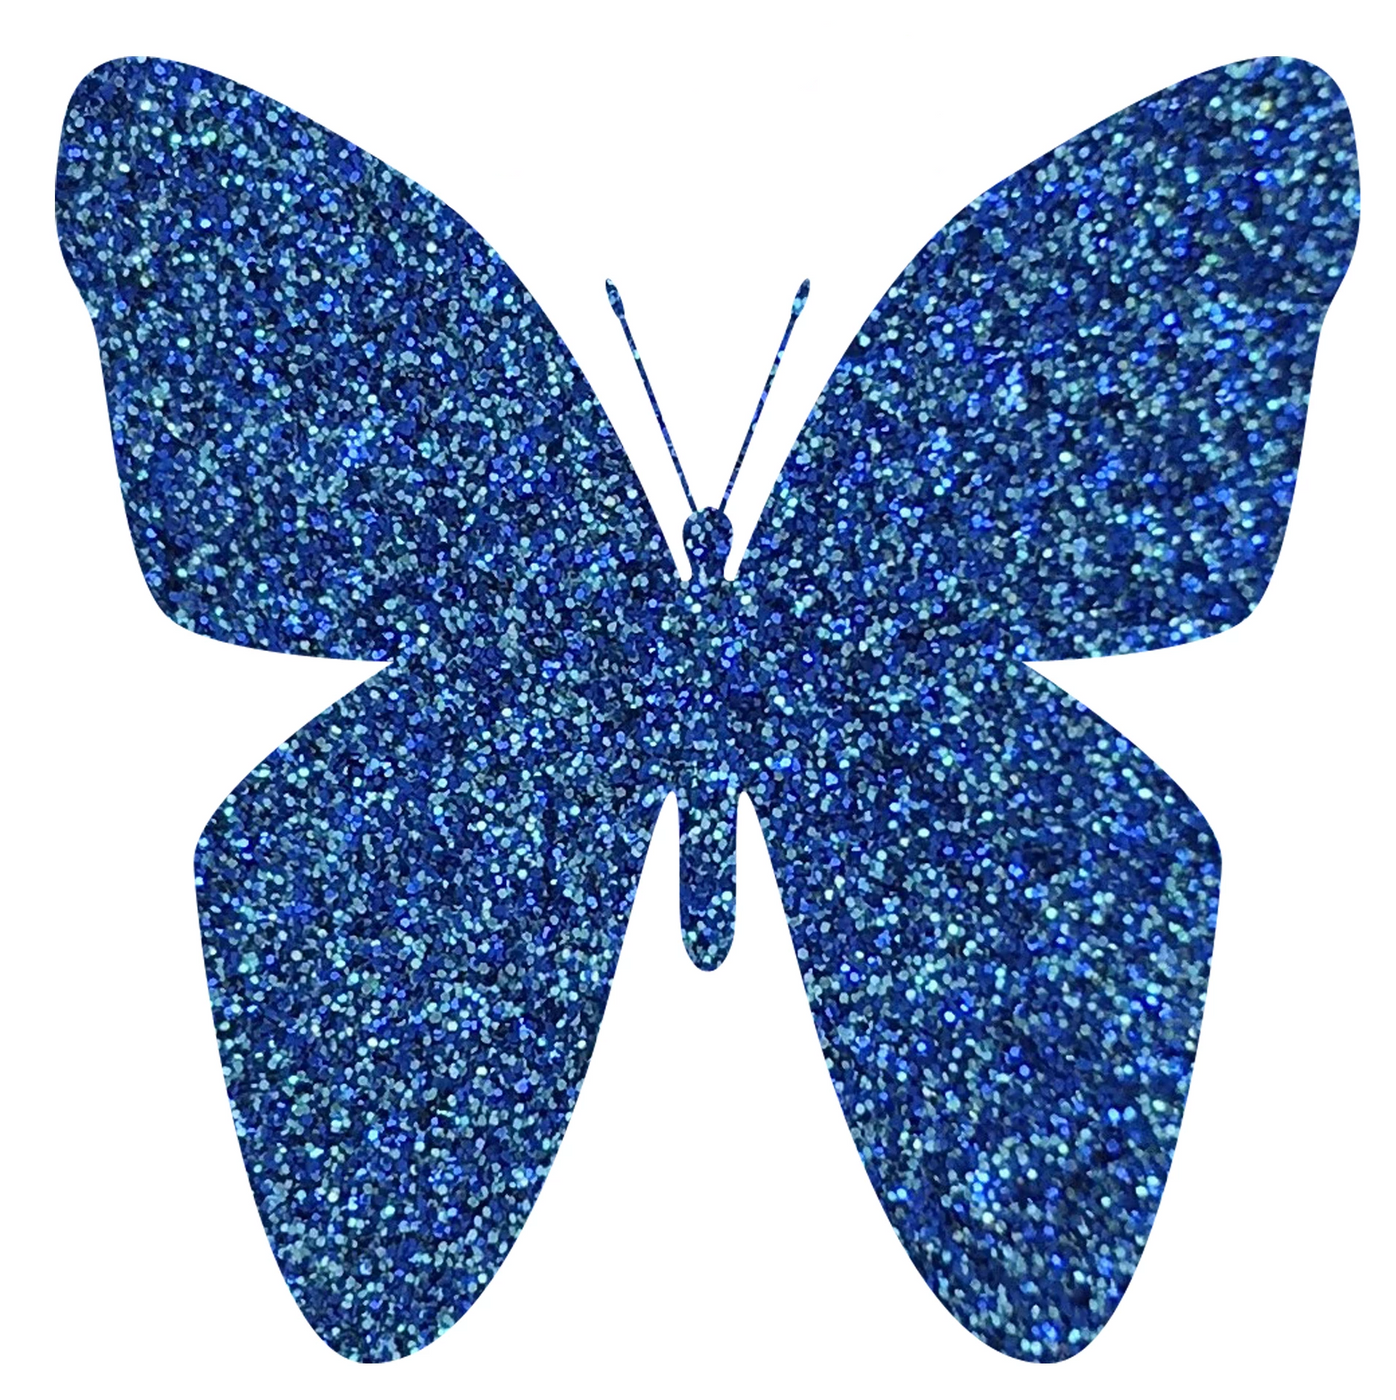 Ultrafine Glitter Blue Lightning, G1008